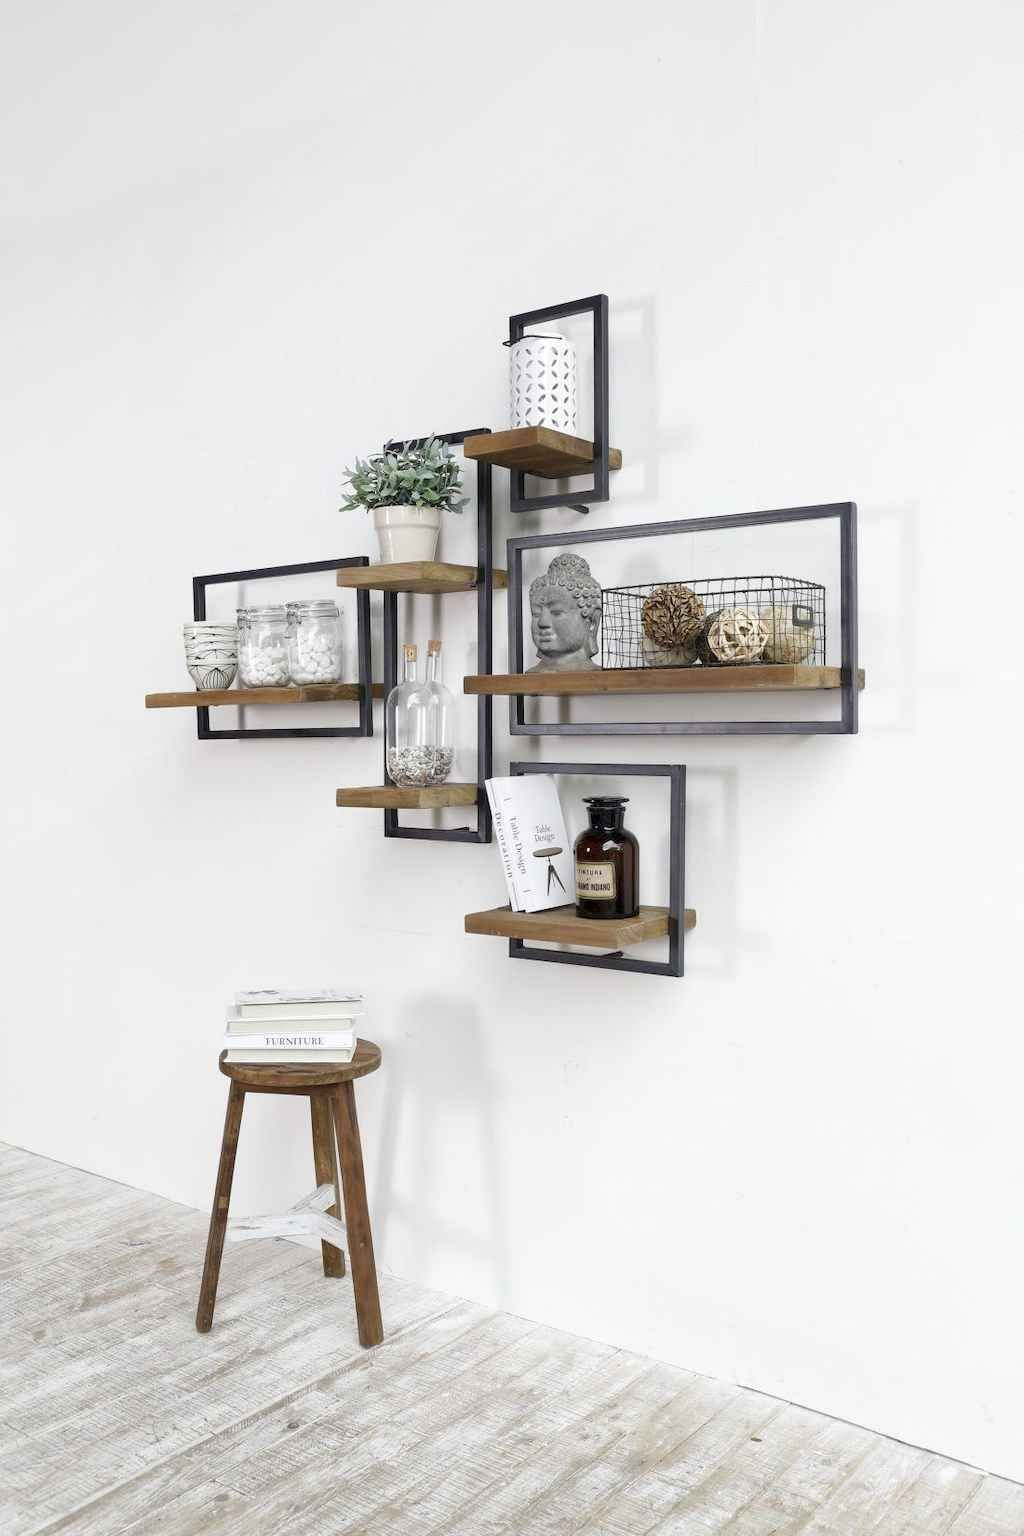 73 Rustic Living Room Decor With Floating Shelves Ideas Rustic Living Room Living Room Decor Rustic Home Decor #rustic #living #room #shelf